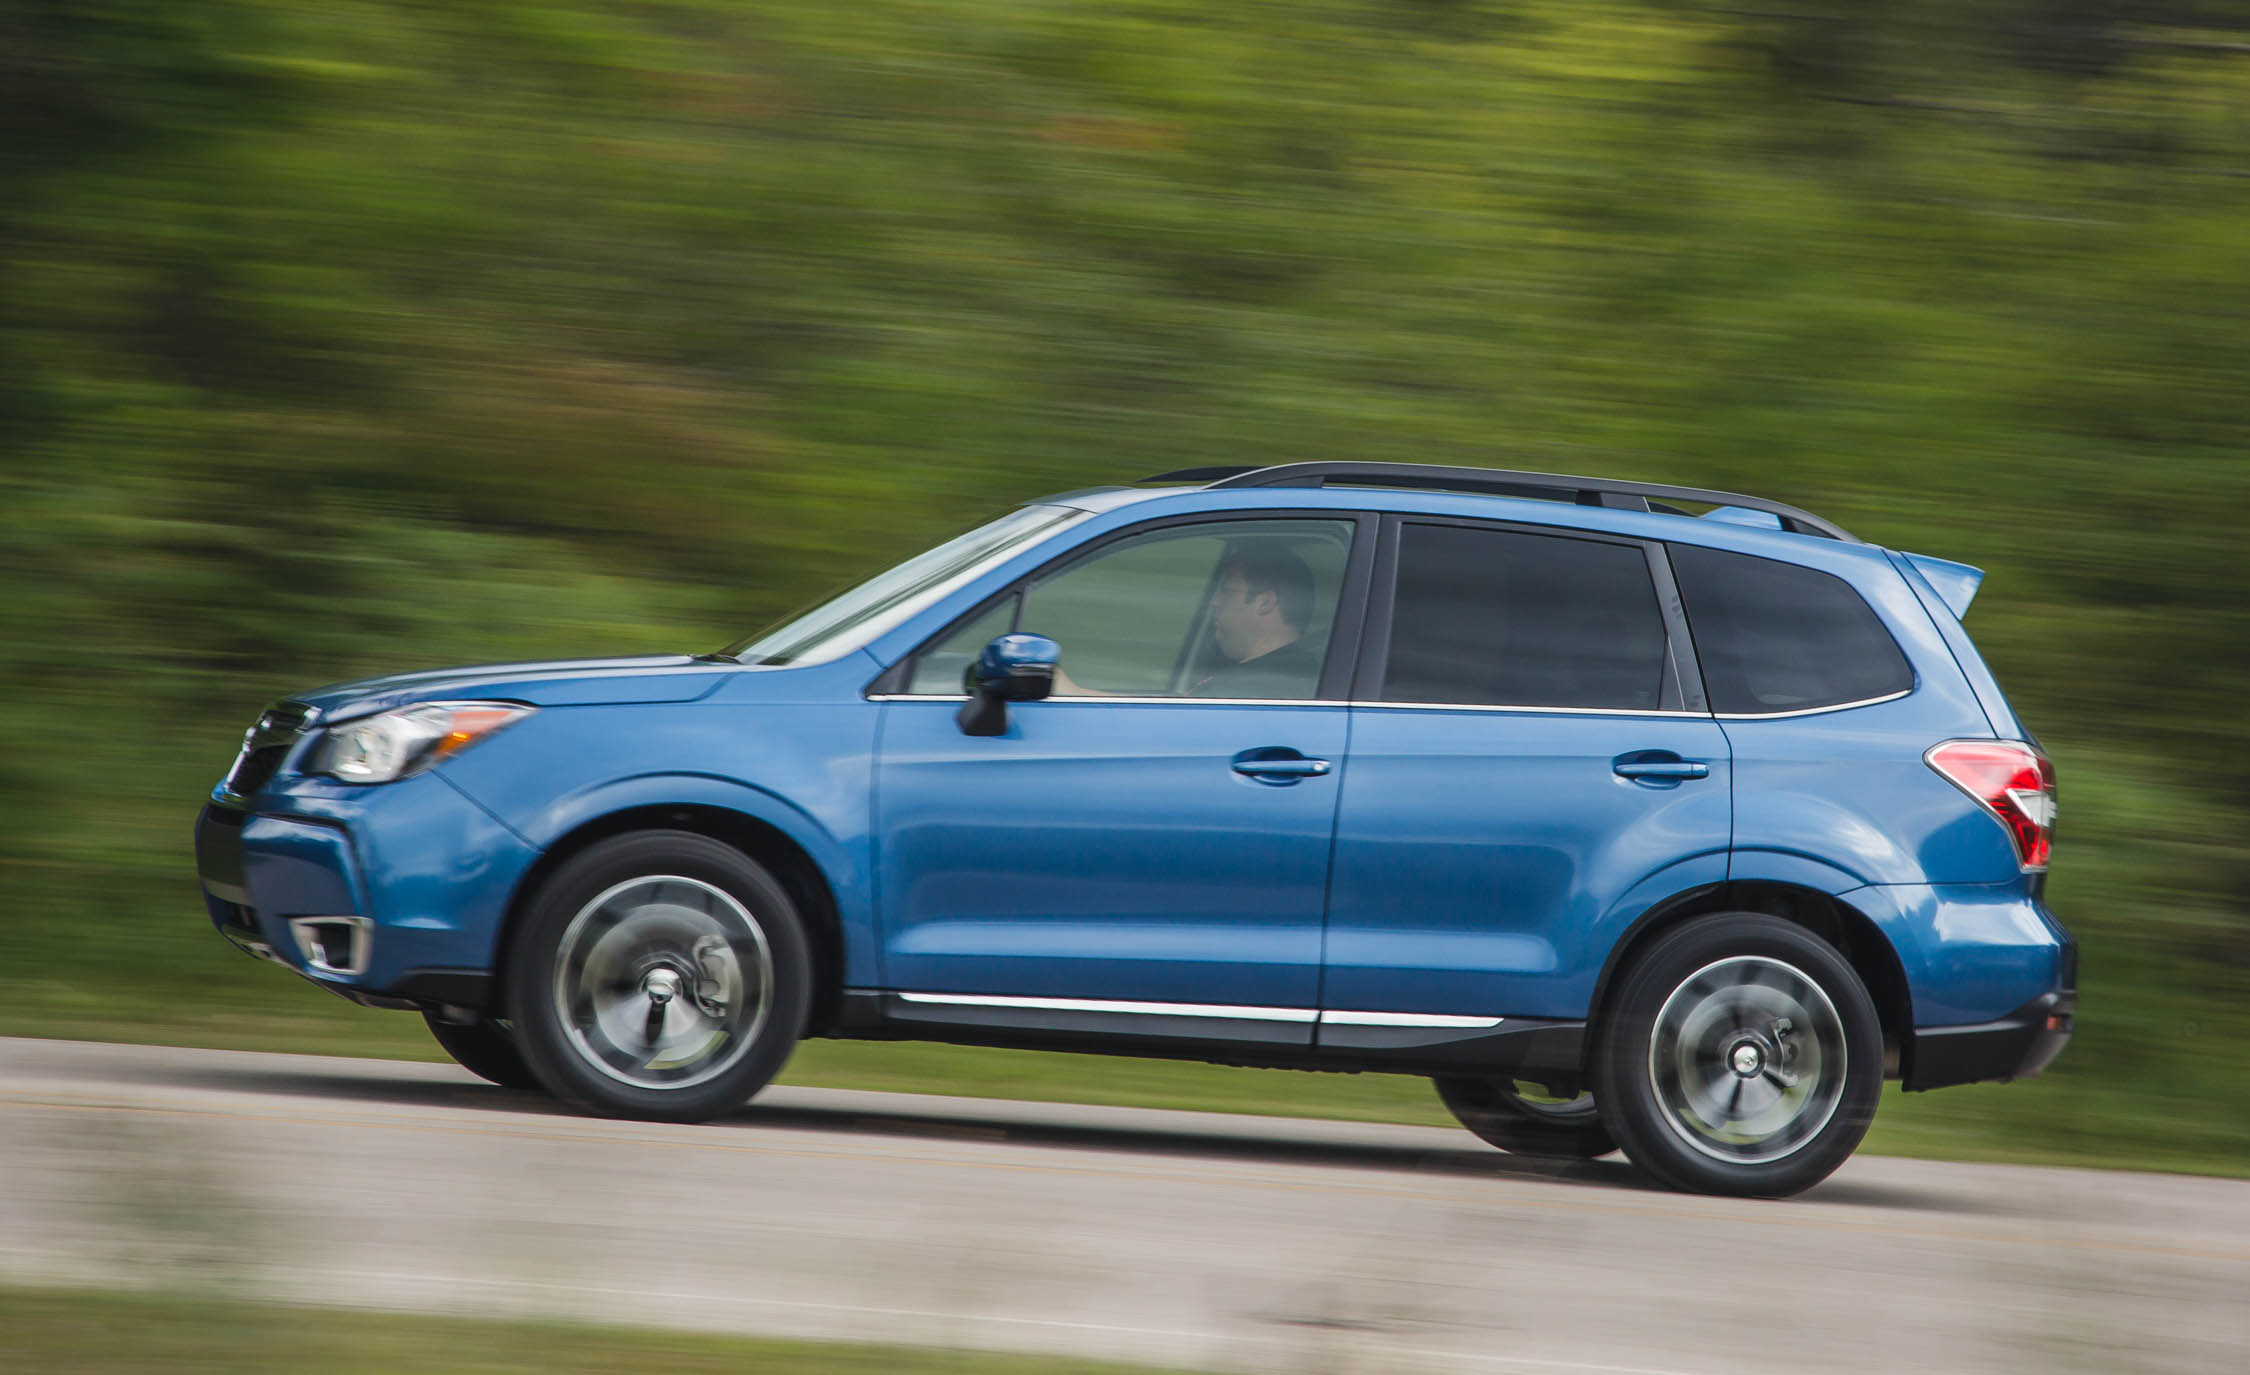 2016 Subaru Forester 2 0xt Touring Test Drive (View 17 of 29)